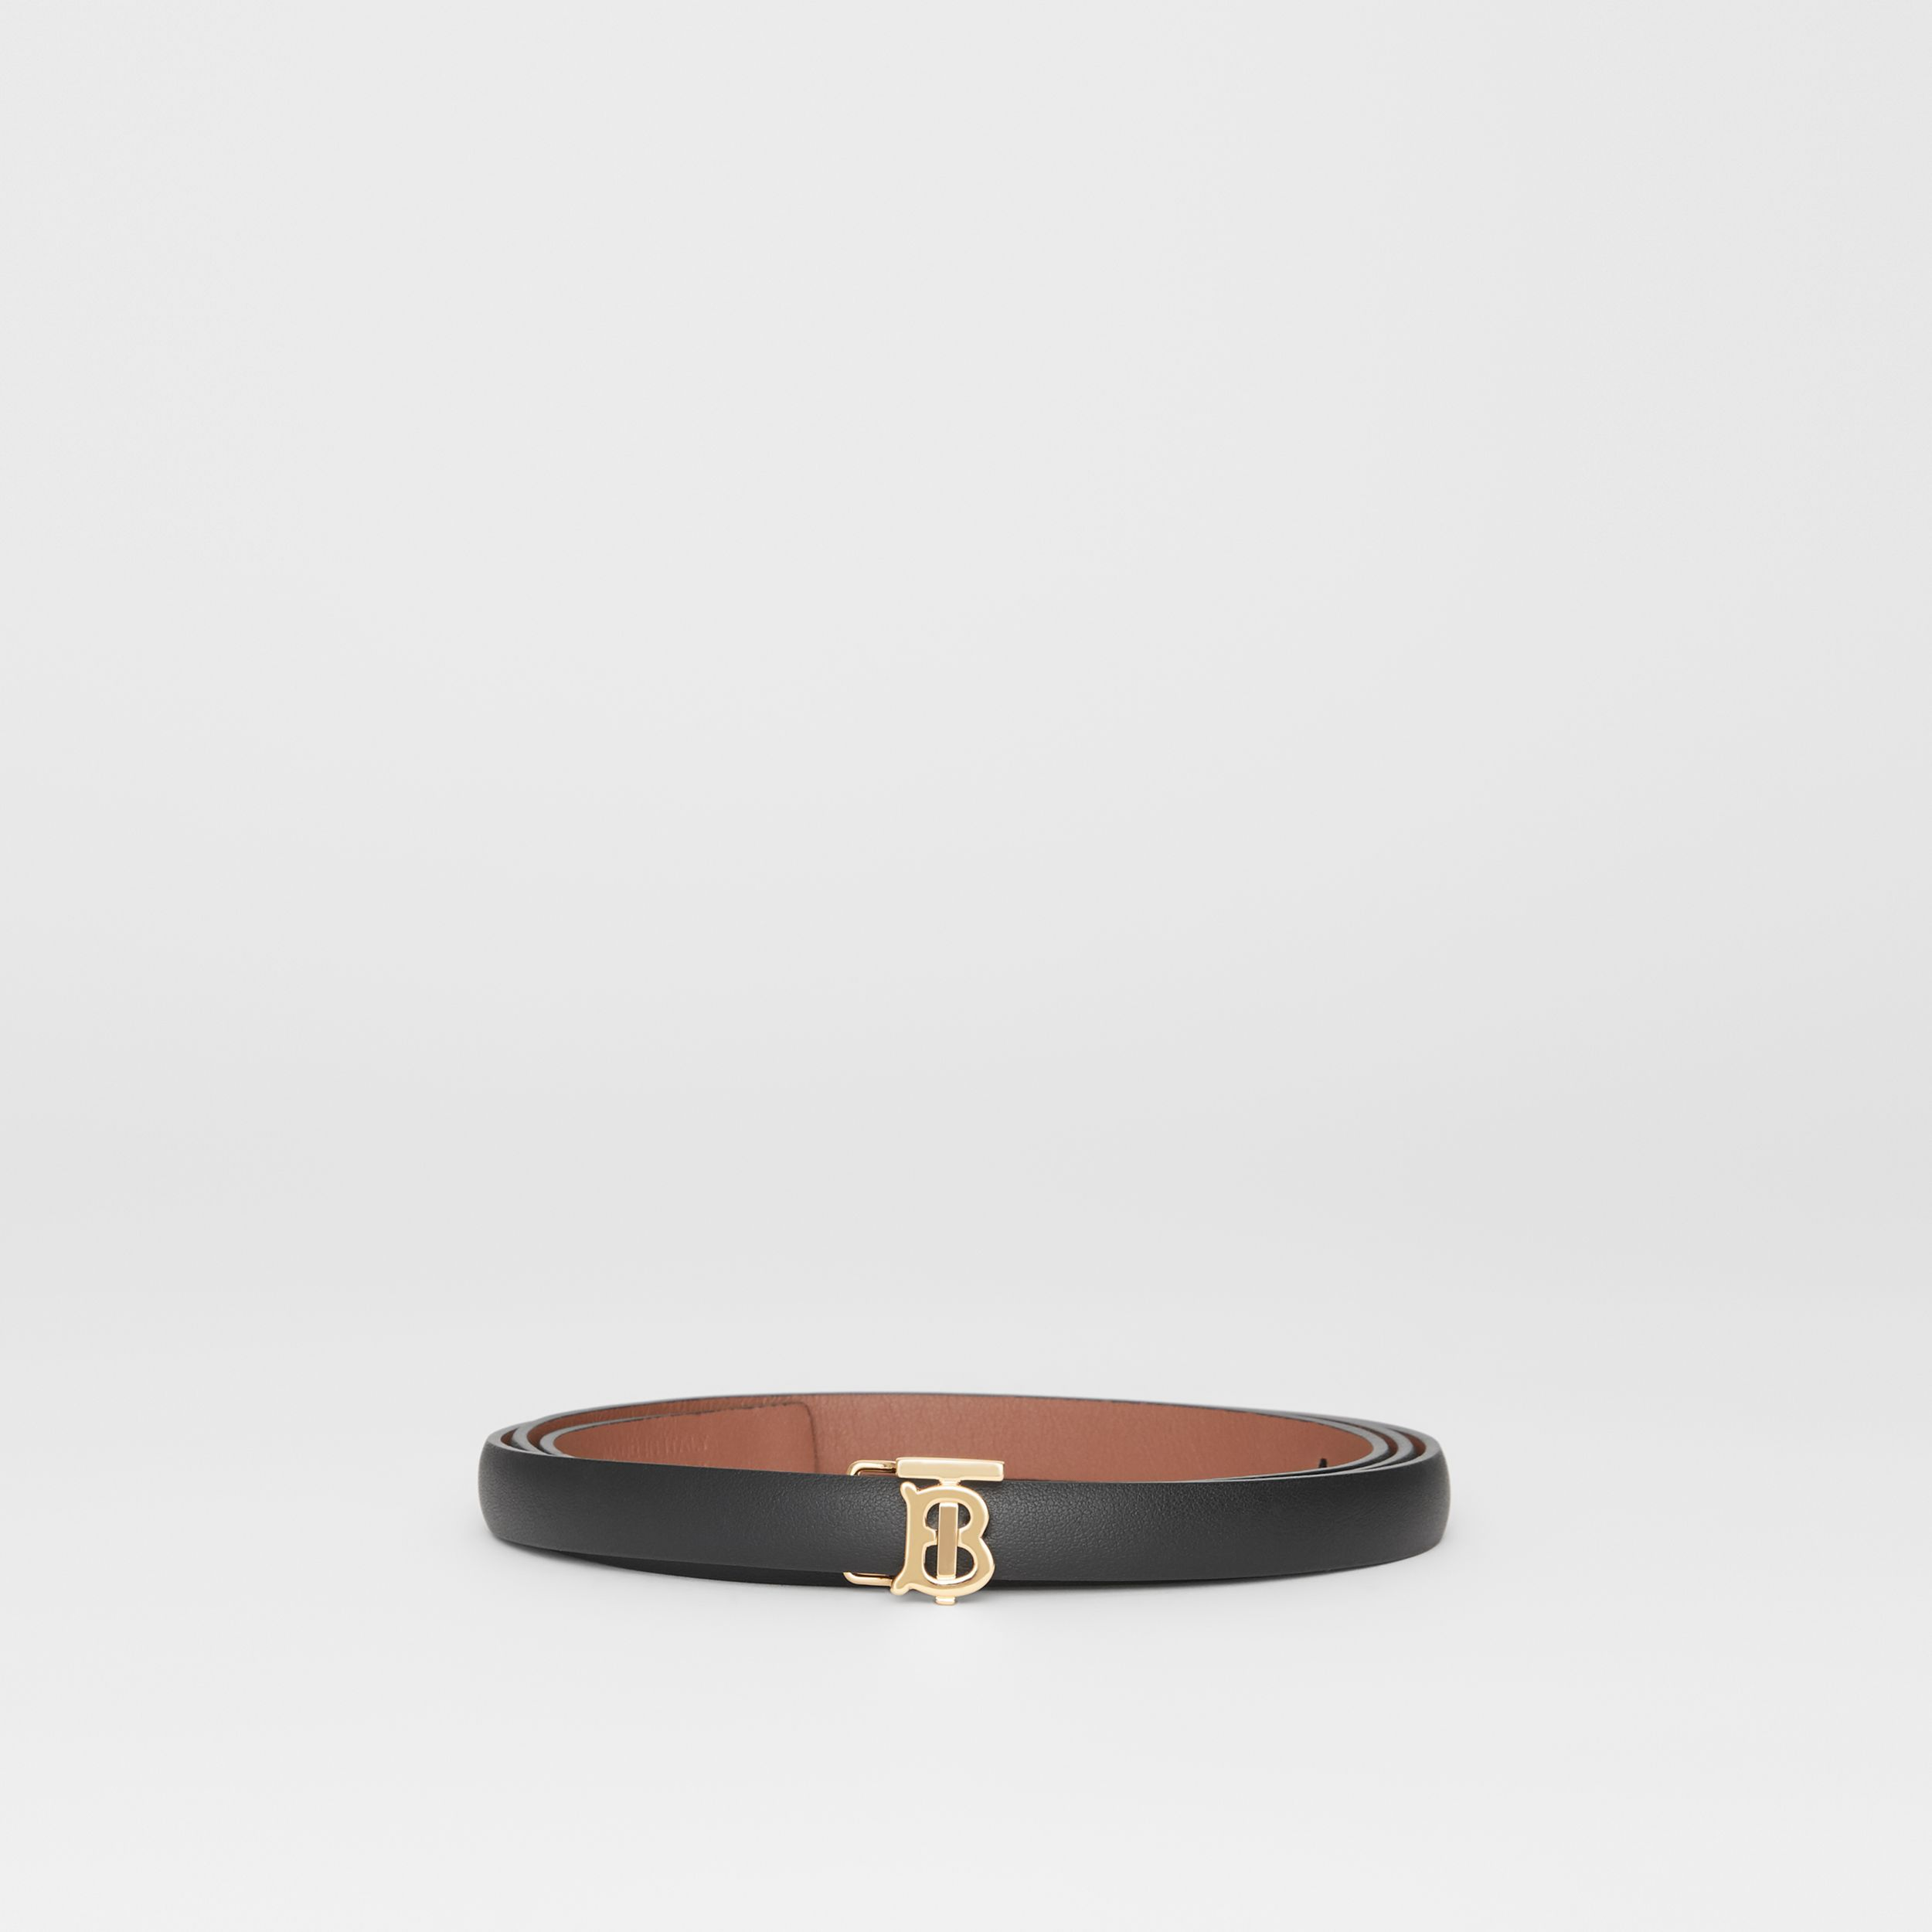 Reversible Monogram Motif Leather Wrap Belt in Black/malt Brown - Women | Burberry - 4